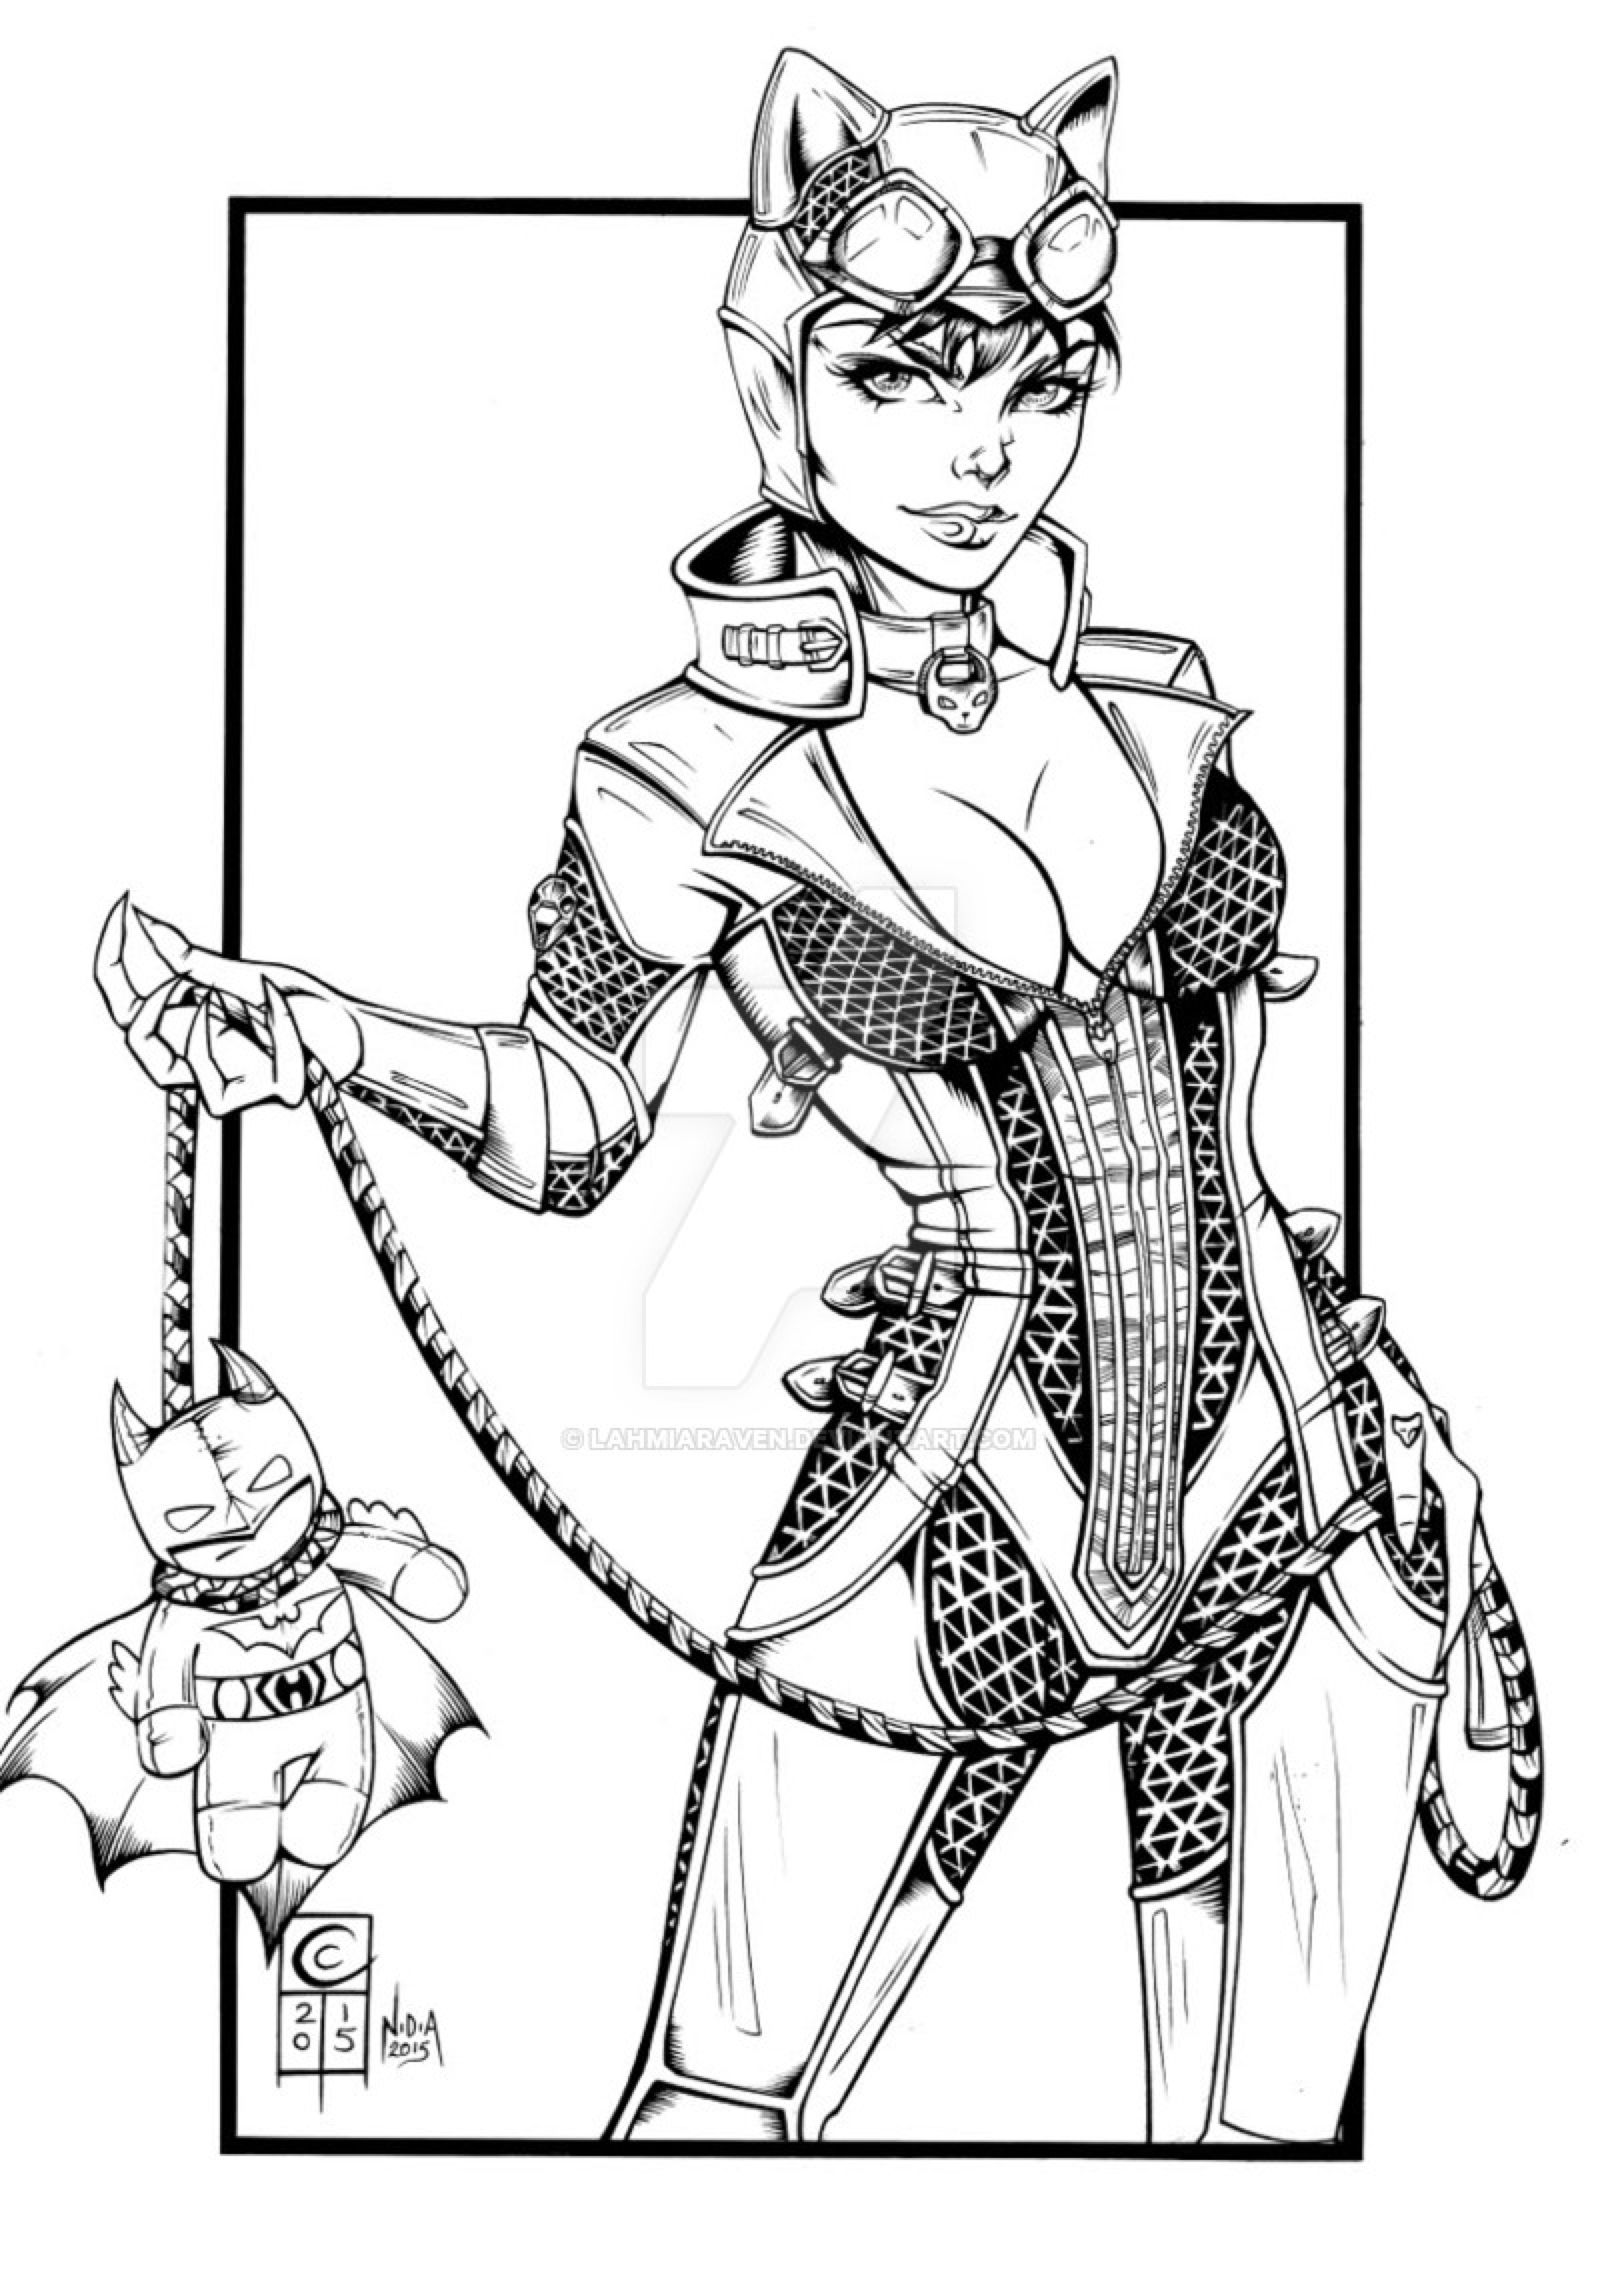 catwoman colouring pages catwoman coloring pages free printable catwoman coloring colouring catwoman pages